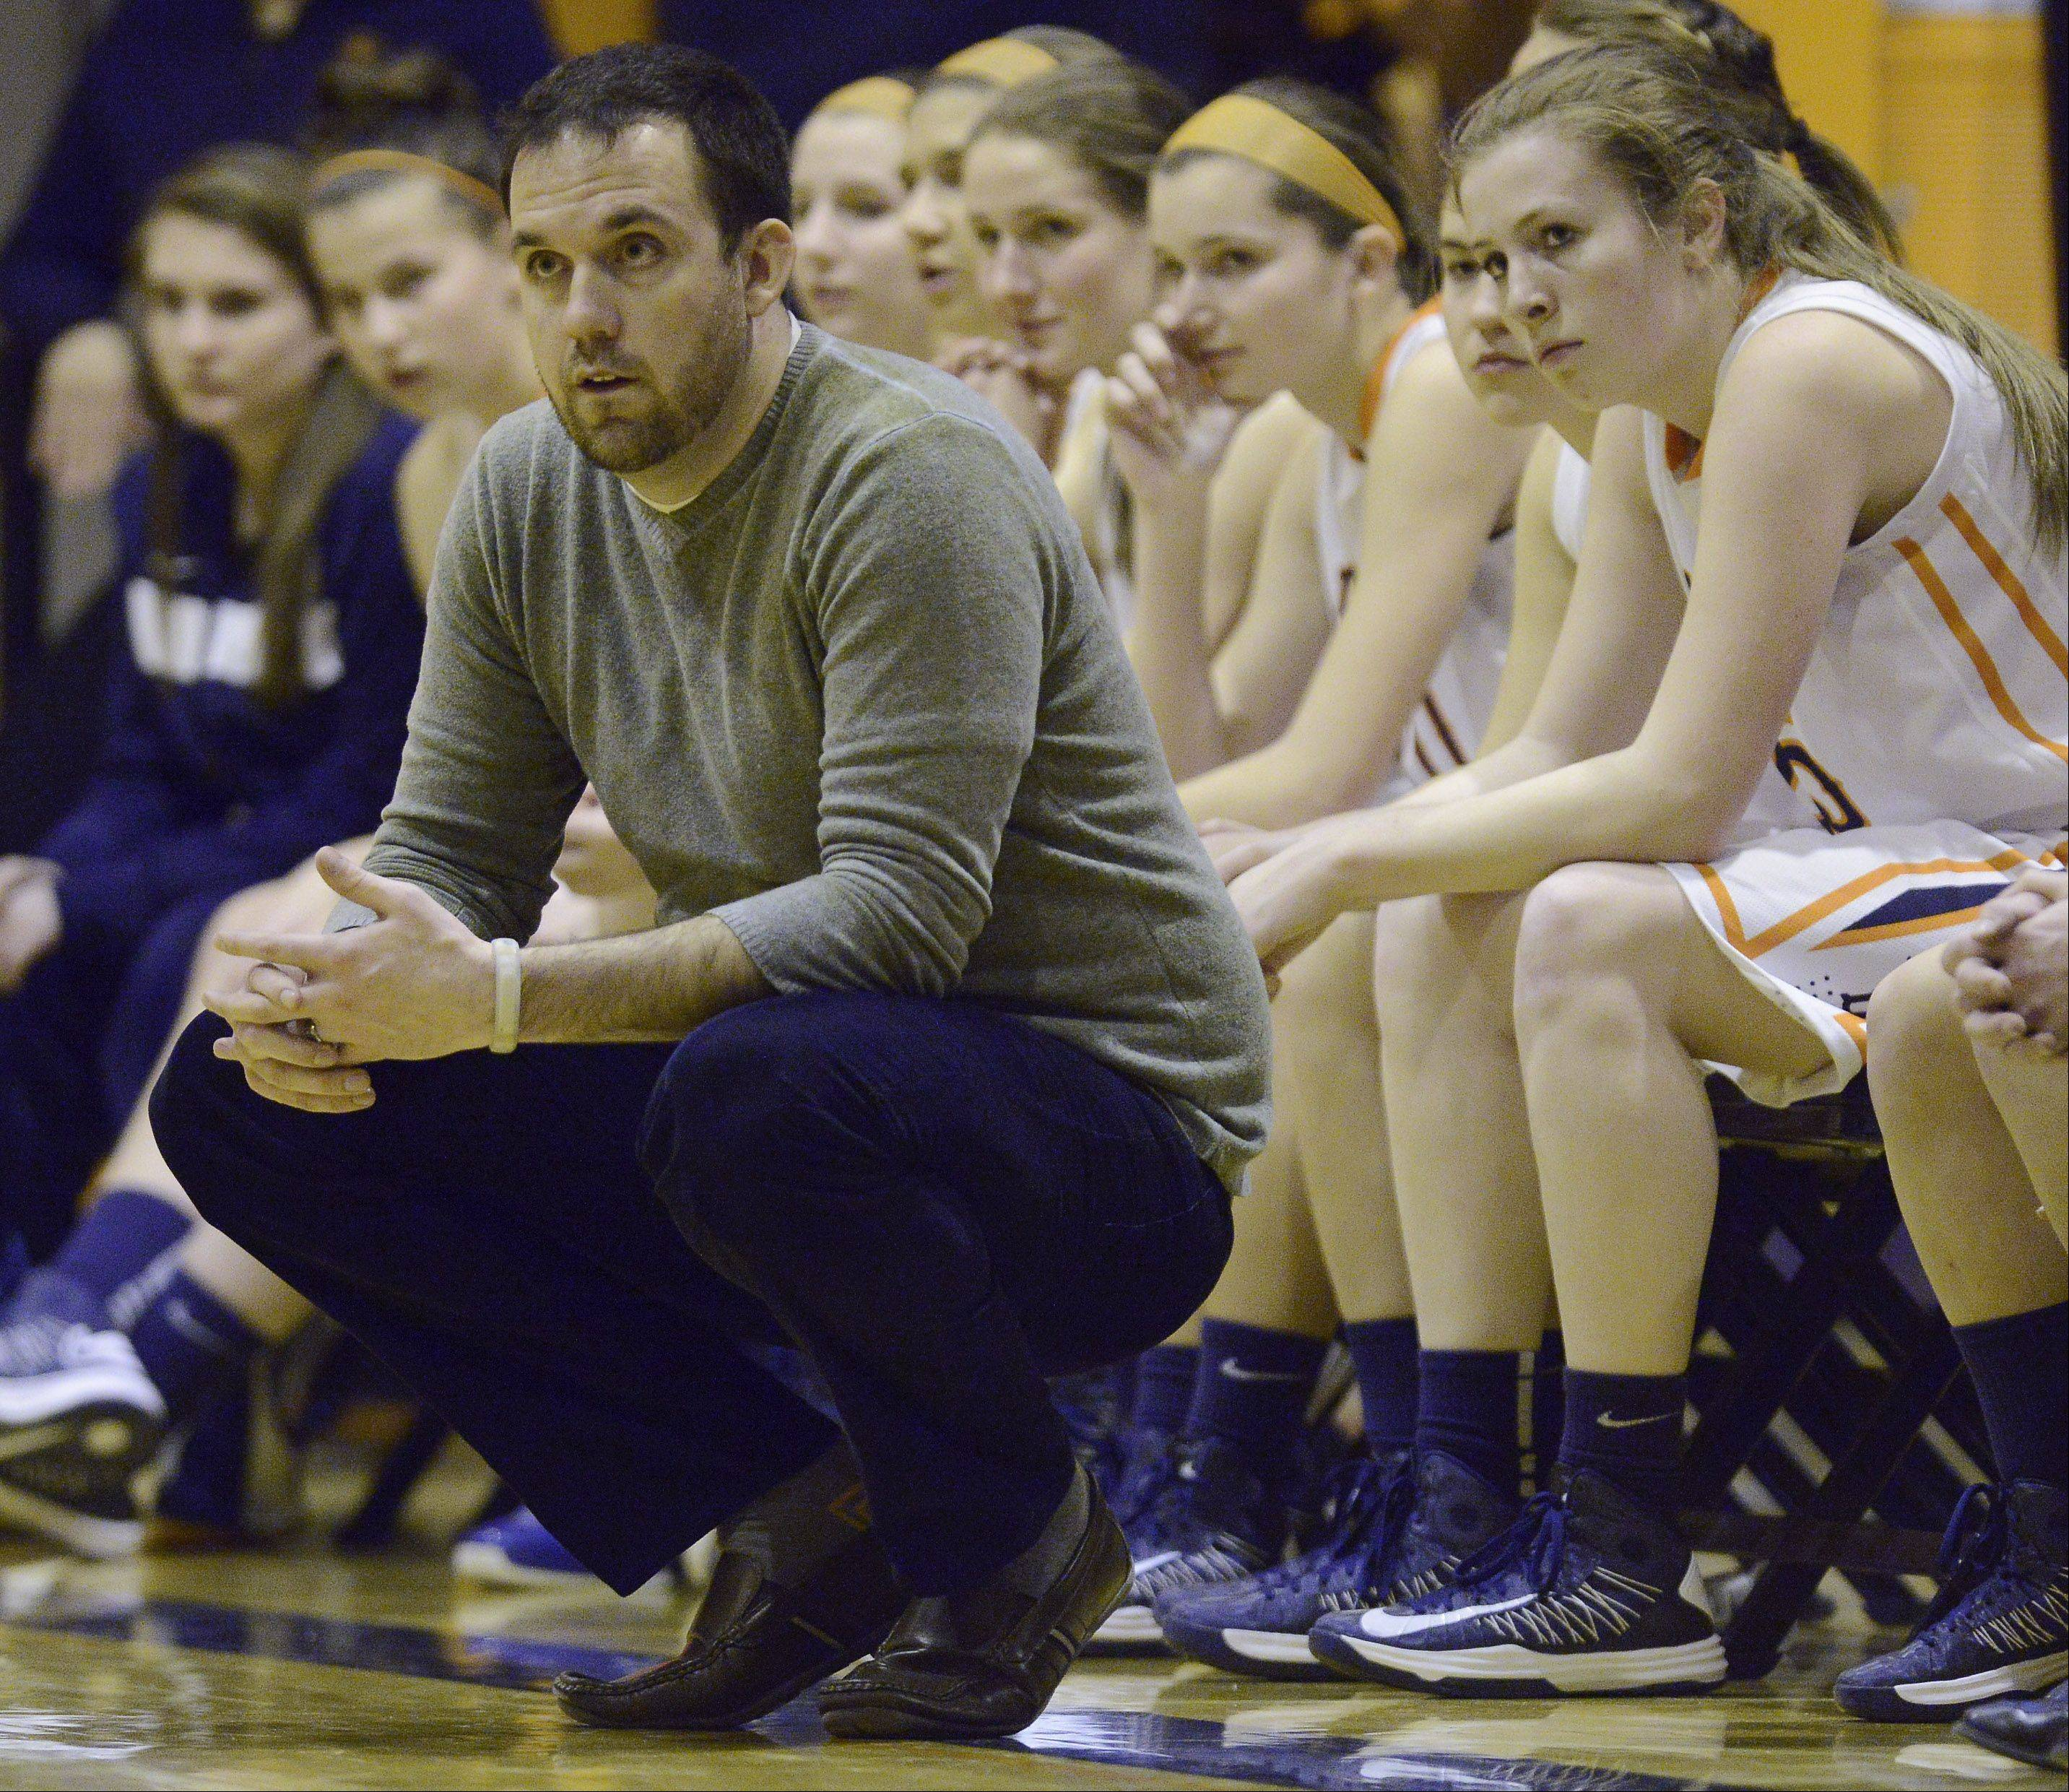 Buffalo Grove girls basketball coach Steve Kolodziej leads his team during Wednesday�s game against Rolling Meadows.